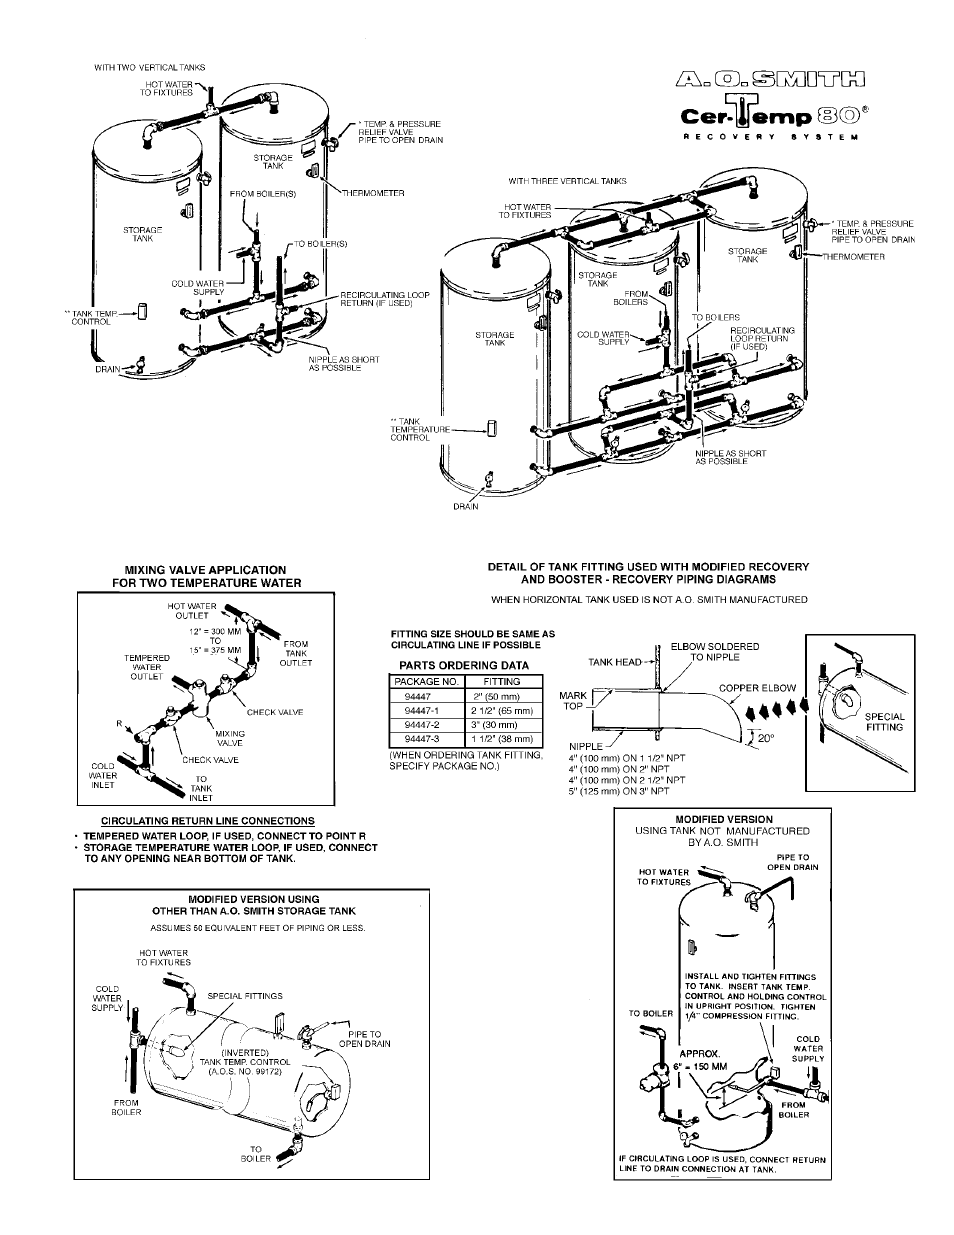 A O Smith Db Dw 720 1810 User Manual Page 31 44